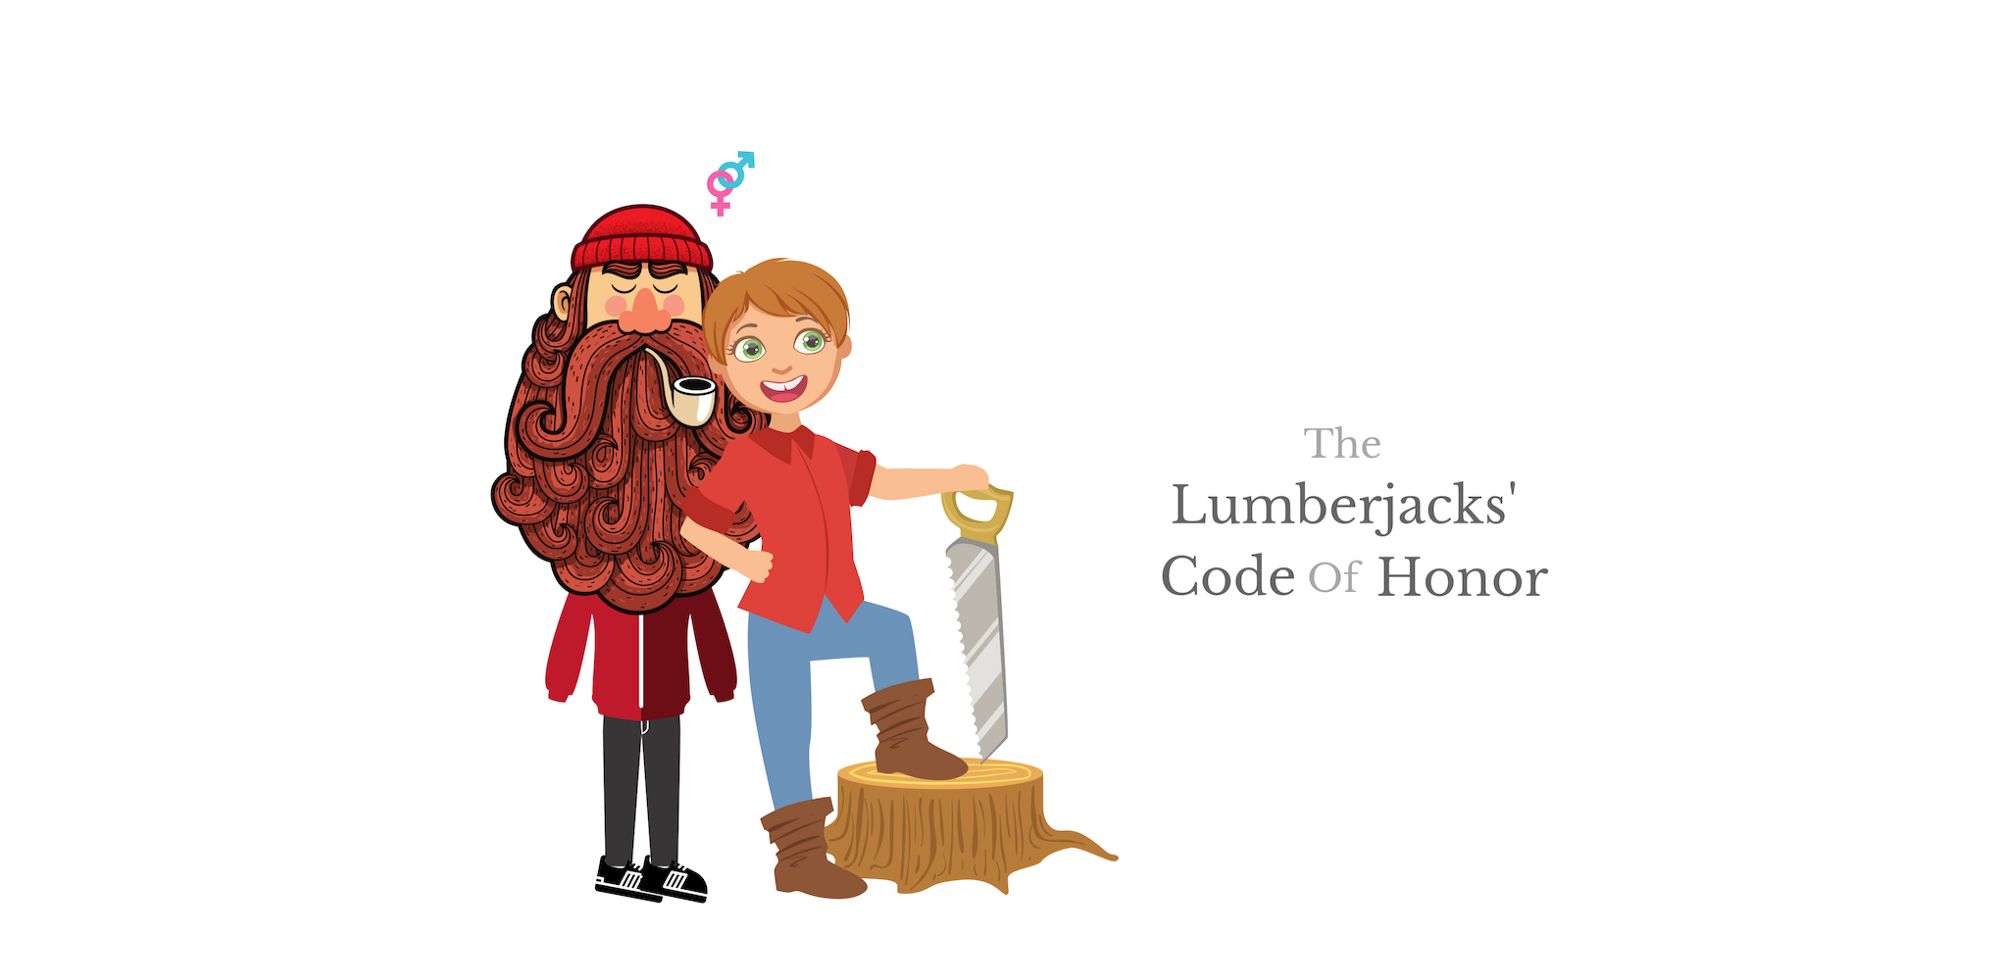 The Lumberjacks' Code of Honor